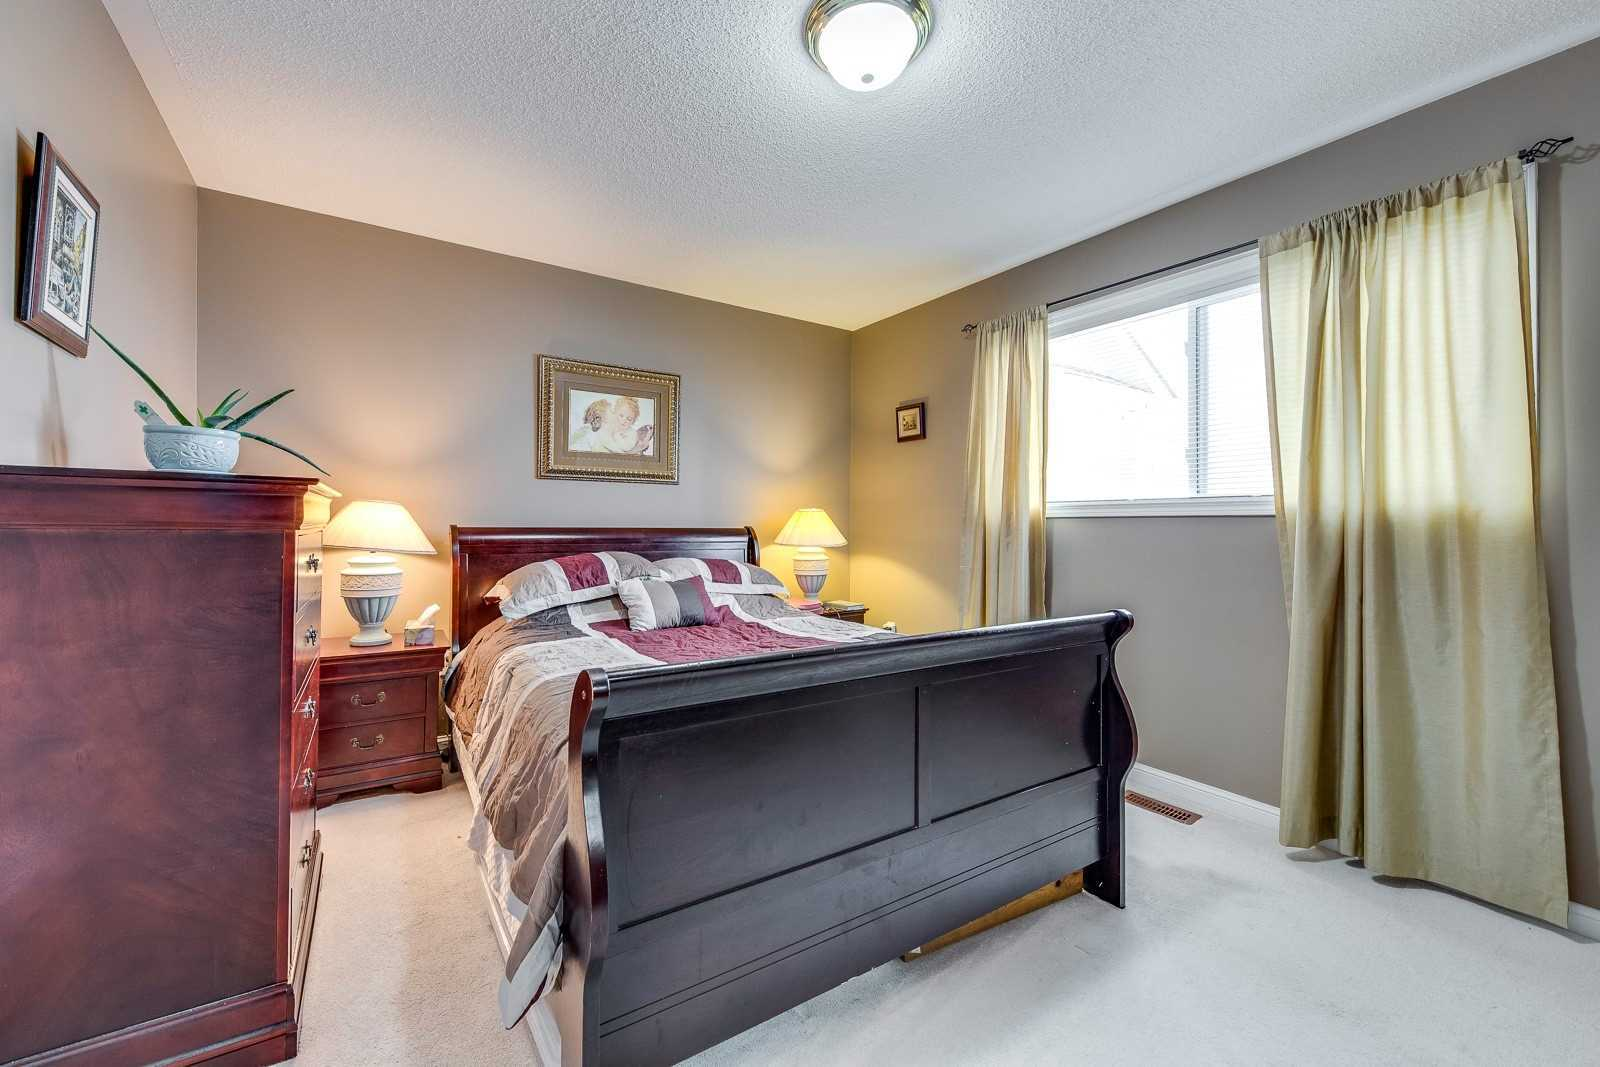 Image 4 of 20 showing inside of 3 Bedroom Att/Row/Twnhouse 2-Storey house for sale at 682 Edwards Ave, Milton L9T6B3